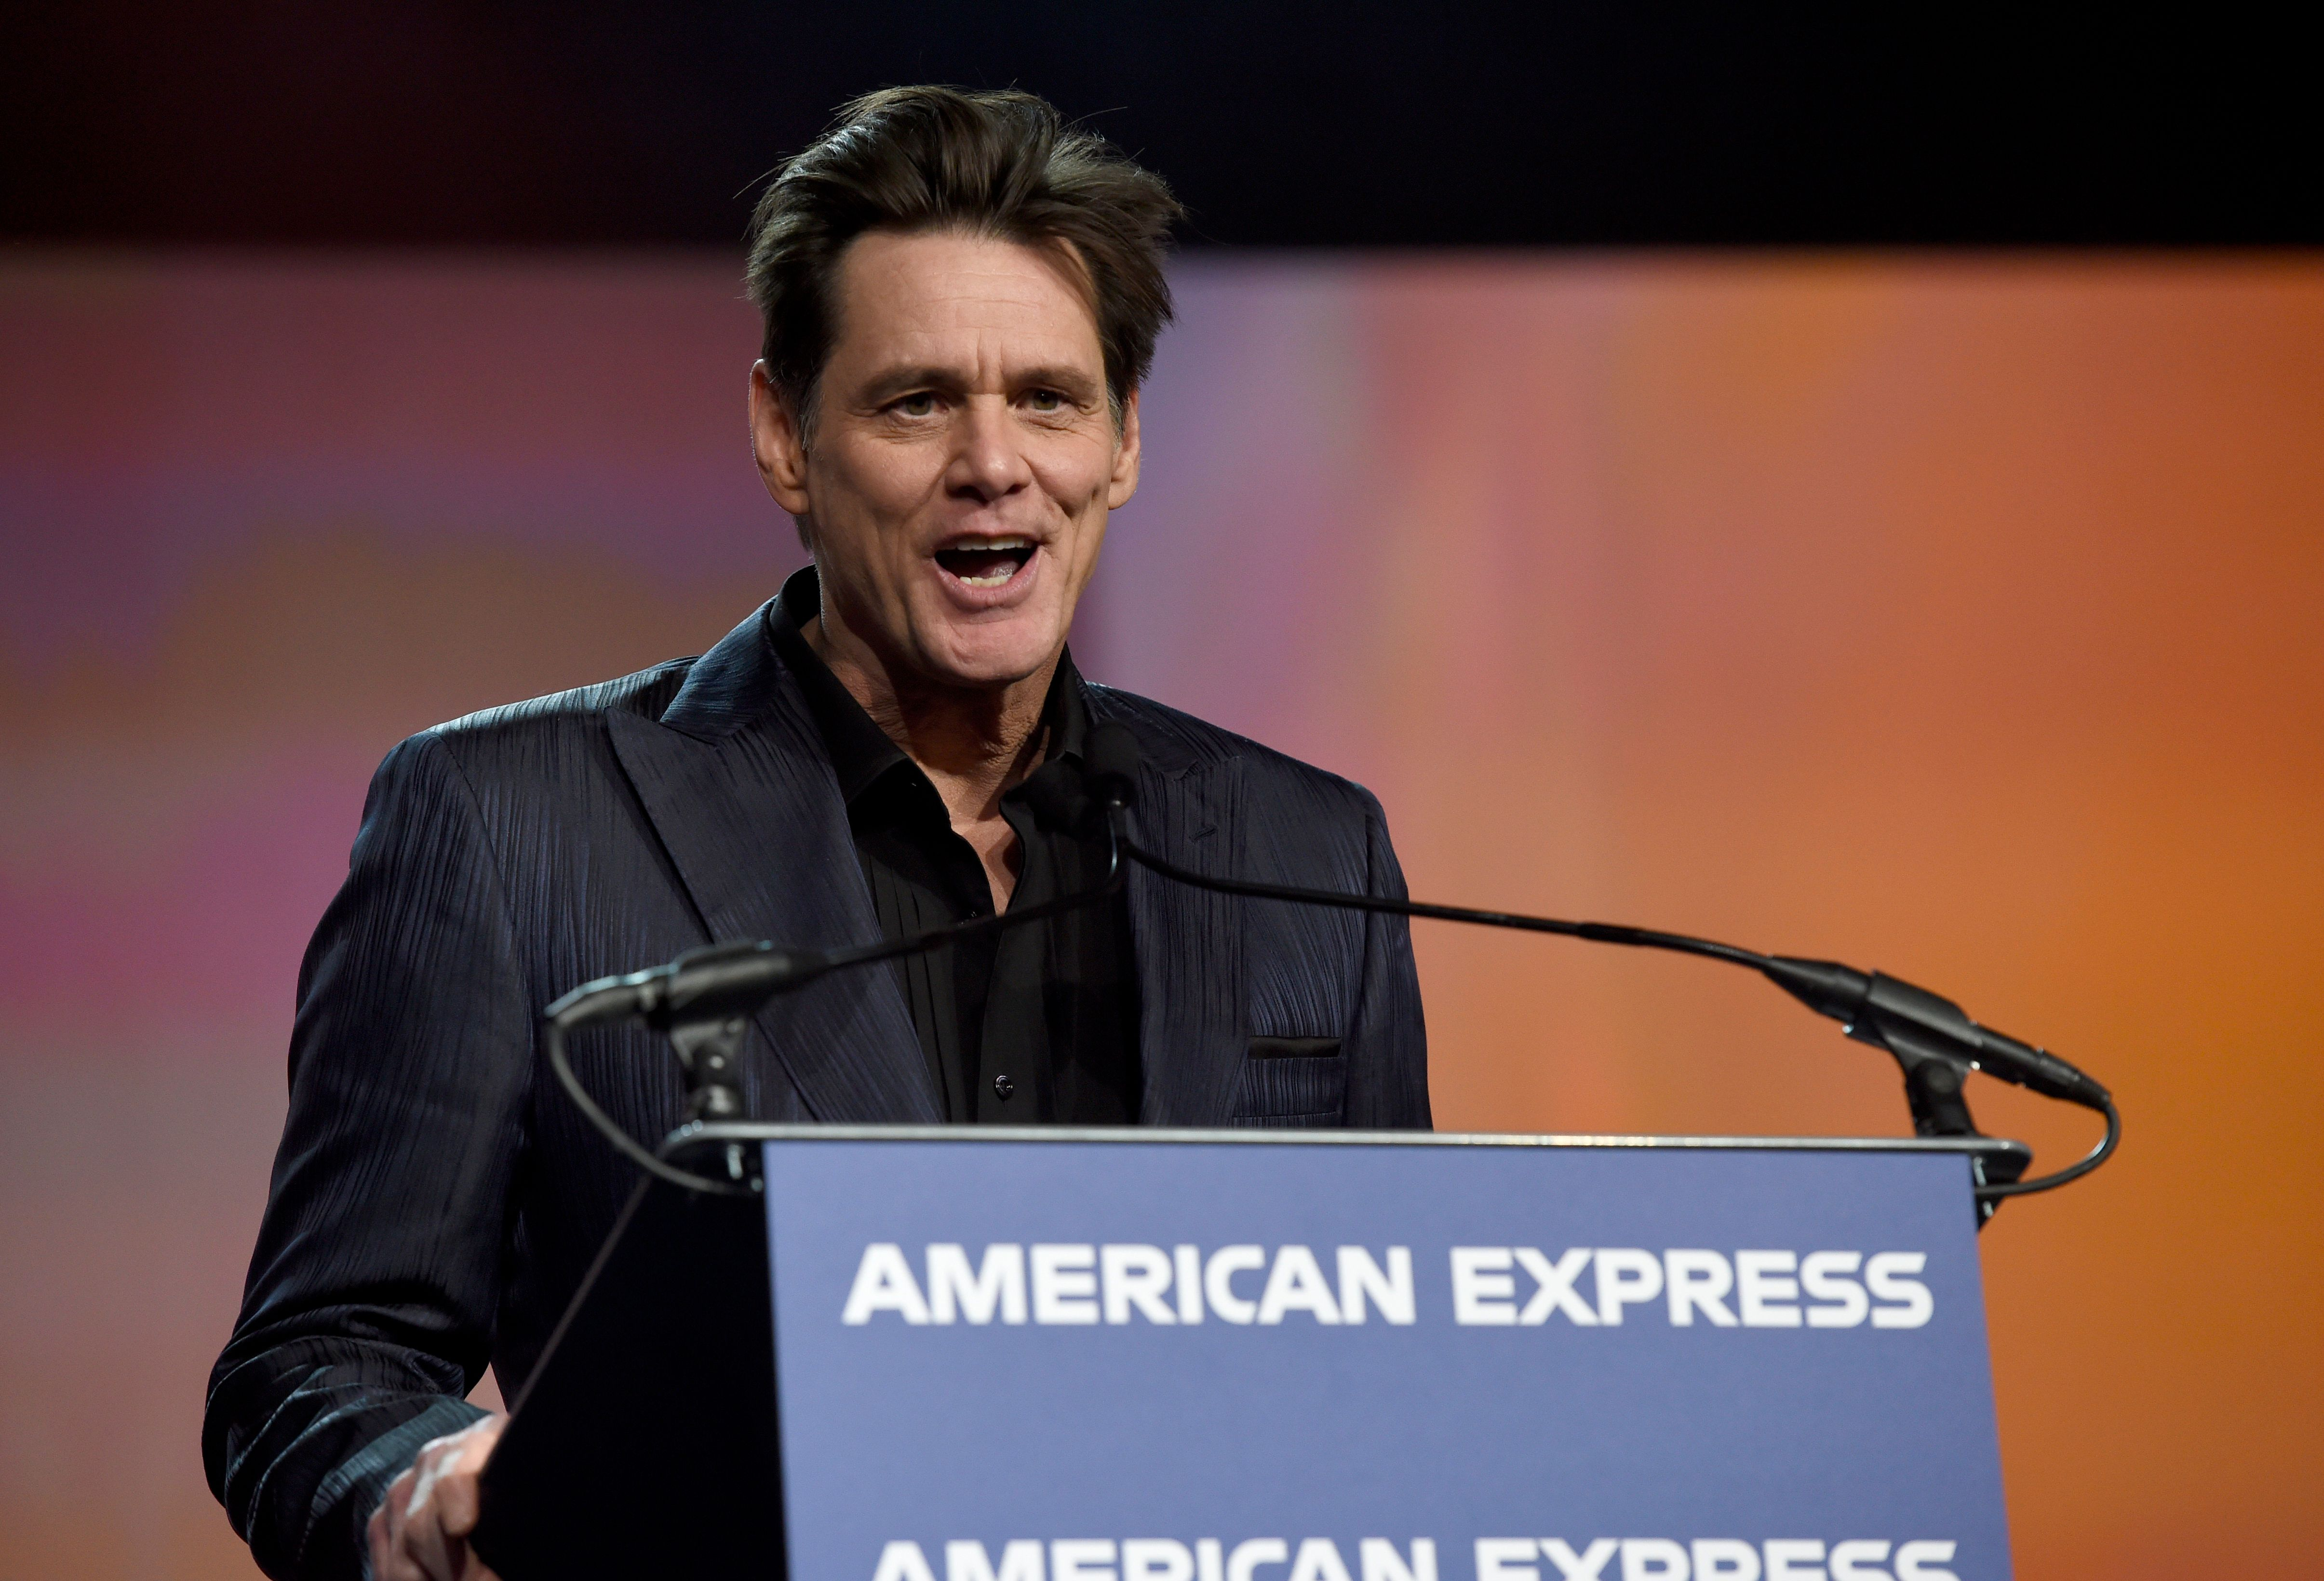 Jim Carrey presents the vanguard award at the 30th annual Palm Springs International Film Festival on Thursday, Jan. 3, 2019, in Palm Springs, Calif. (Photo by Chris Pizzello/Invision/AP)